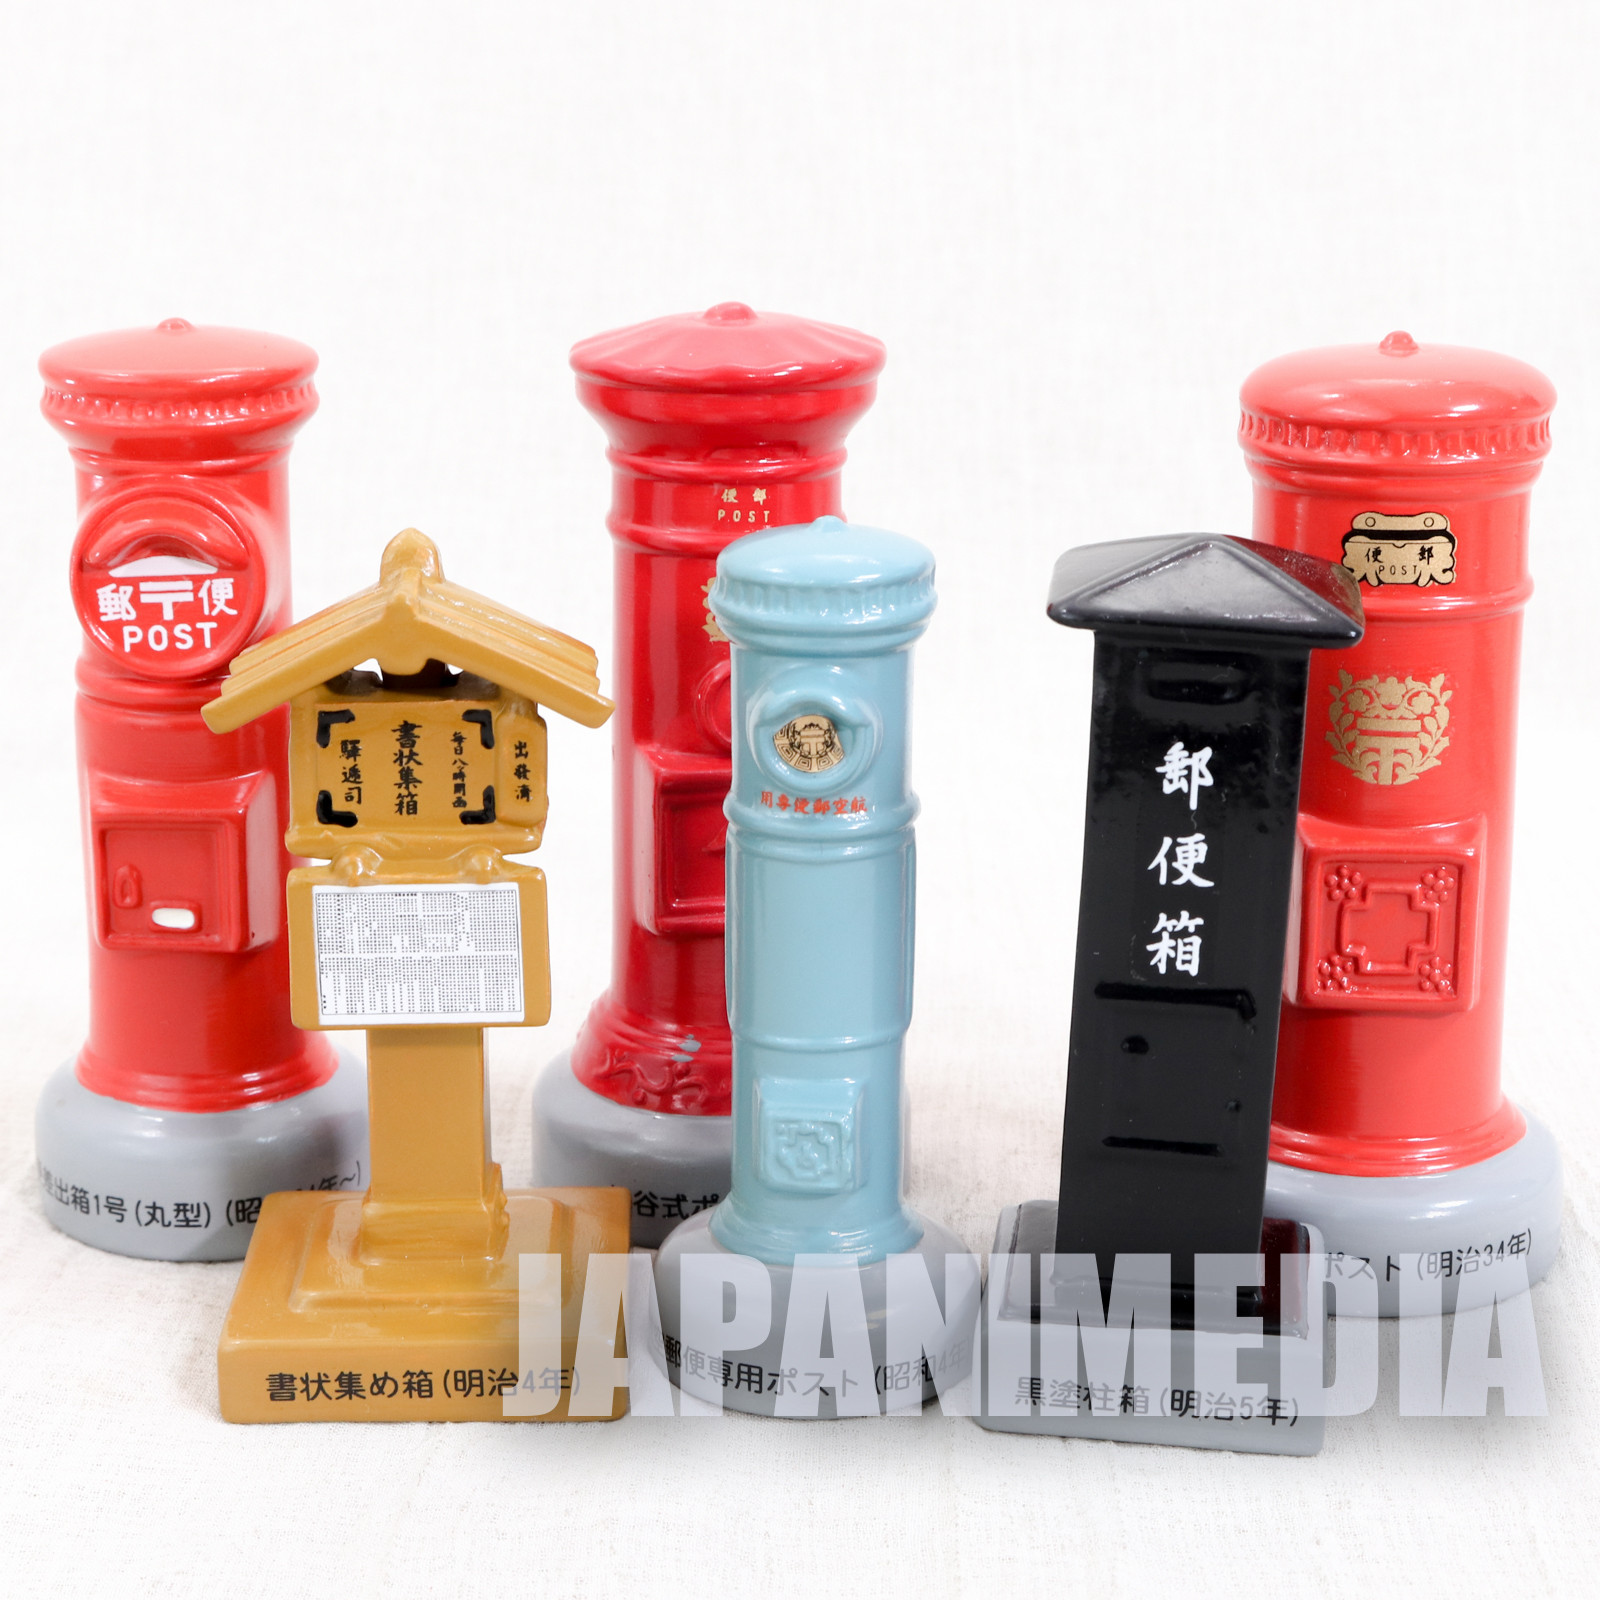 Japan Post Miniature Collection Figure 6pc Set 2005 World Expostion